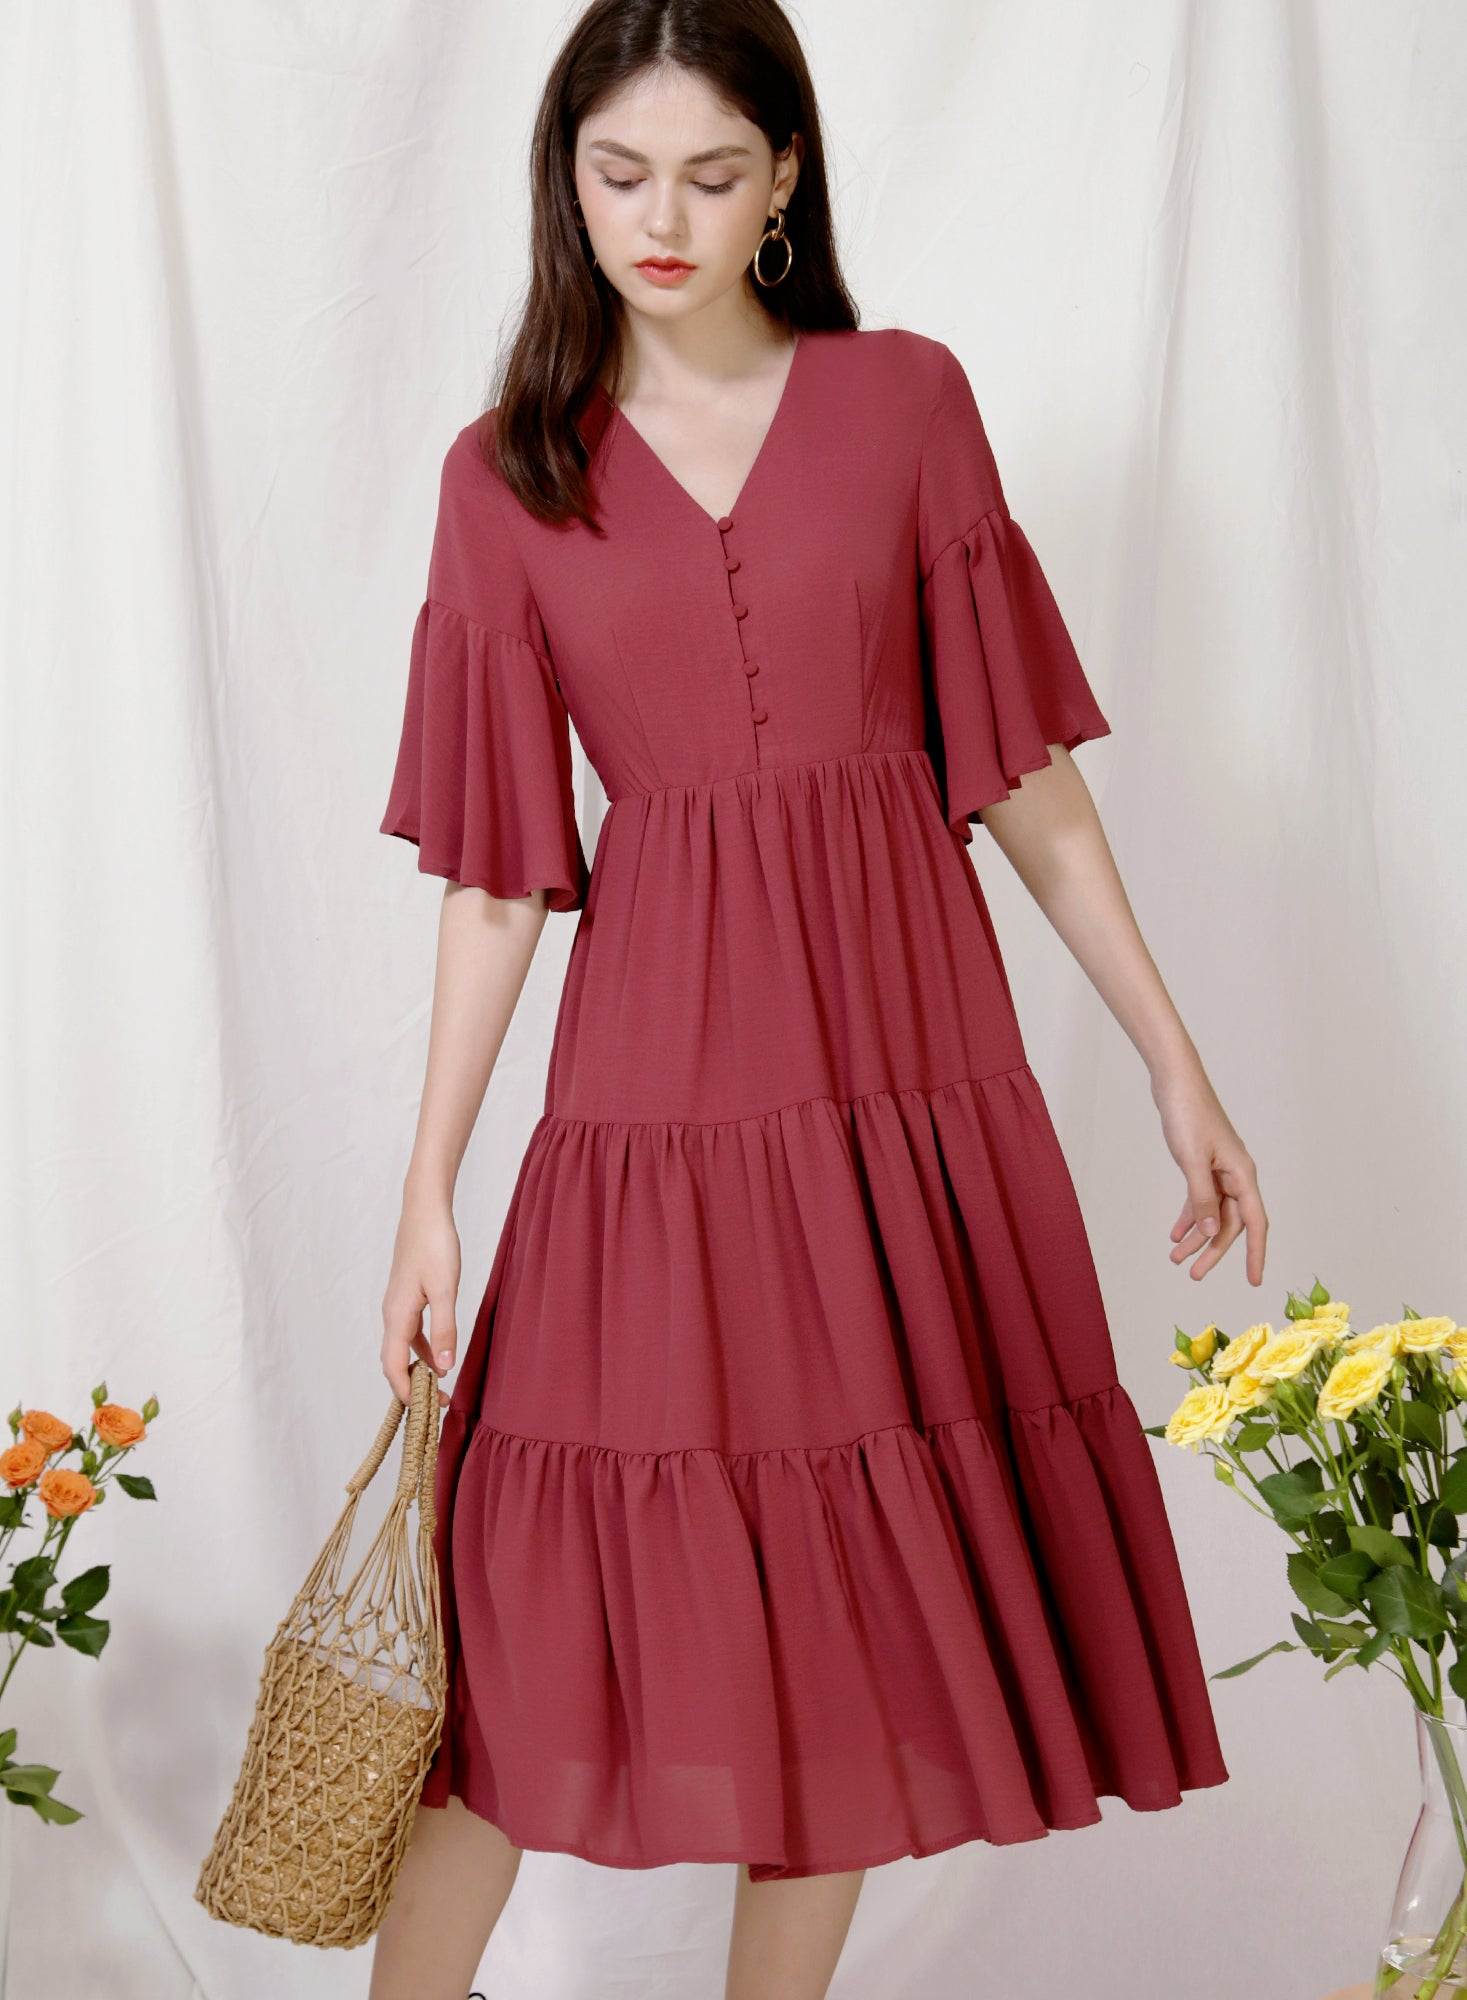 Belle Ruffled Sleeves Midi Dress (Dark Rose) at $ 49.50 only sold at And Well Dressed Online Fashion Store Singapore